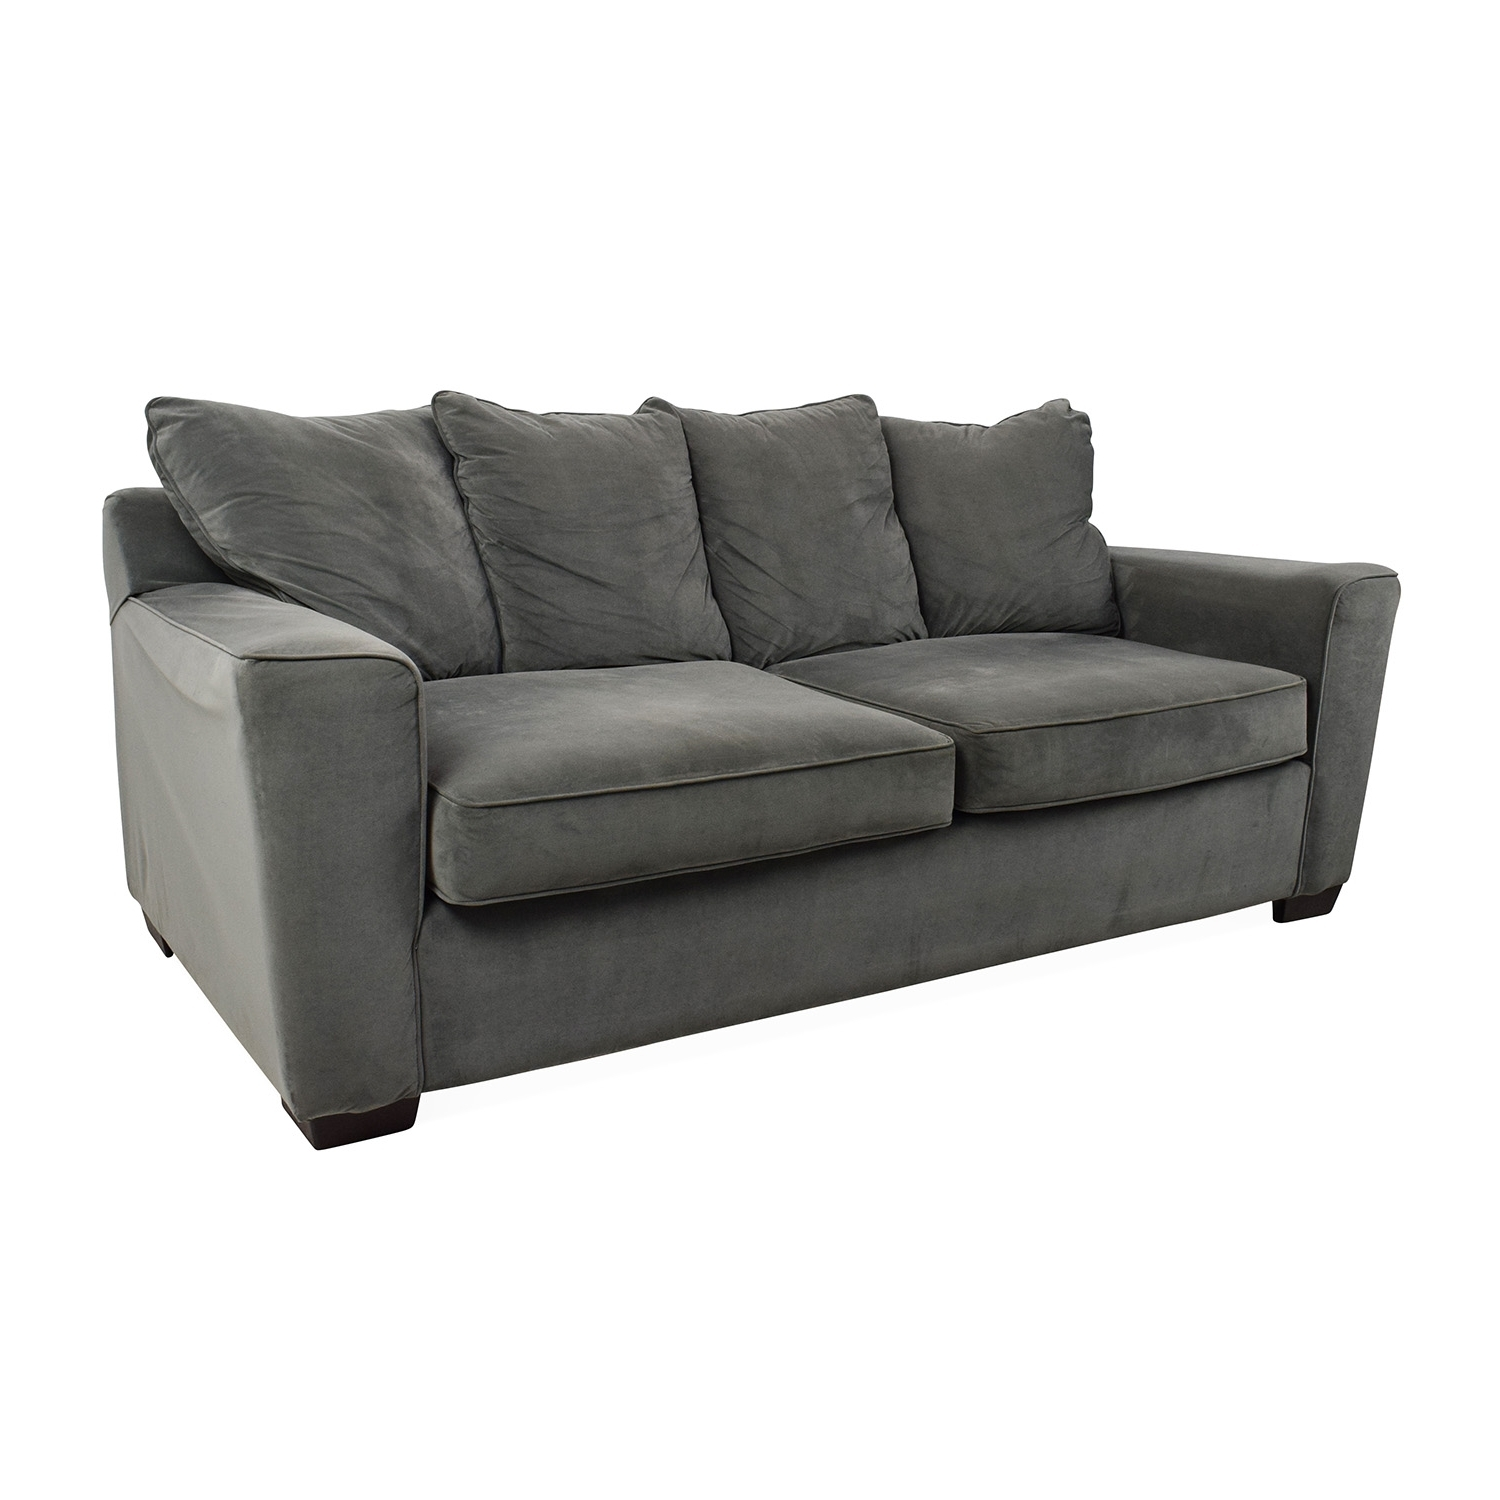 [%53% Off – Jennifer Convertibles Jennifer Convertibles Grey Couch With Fashionable Jennifer Sofas|Jennifer Sofas Intended For Best And Newest 53% Off – Jennifer Convertibles Jennifer Convertibles Grey Couch|Well Liked Jennifer Sofas With Regard To 53% Off – Jennifer Convertibles Jennifer Convertibles Grey Couch|Well Liked 53% Off – Jennifer Convertibles Jennifer Convertibles Grey Couch With Regard To Jennifer Sofas%] (View 2 of 15)